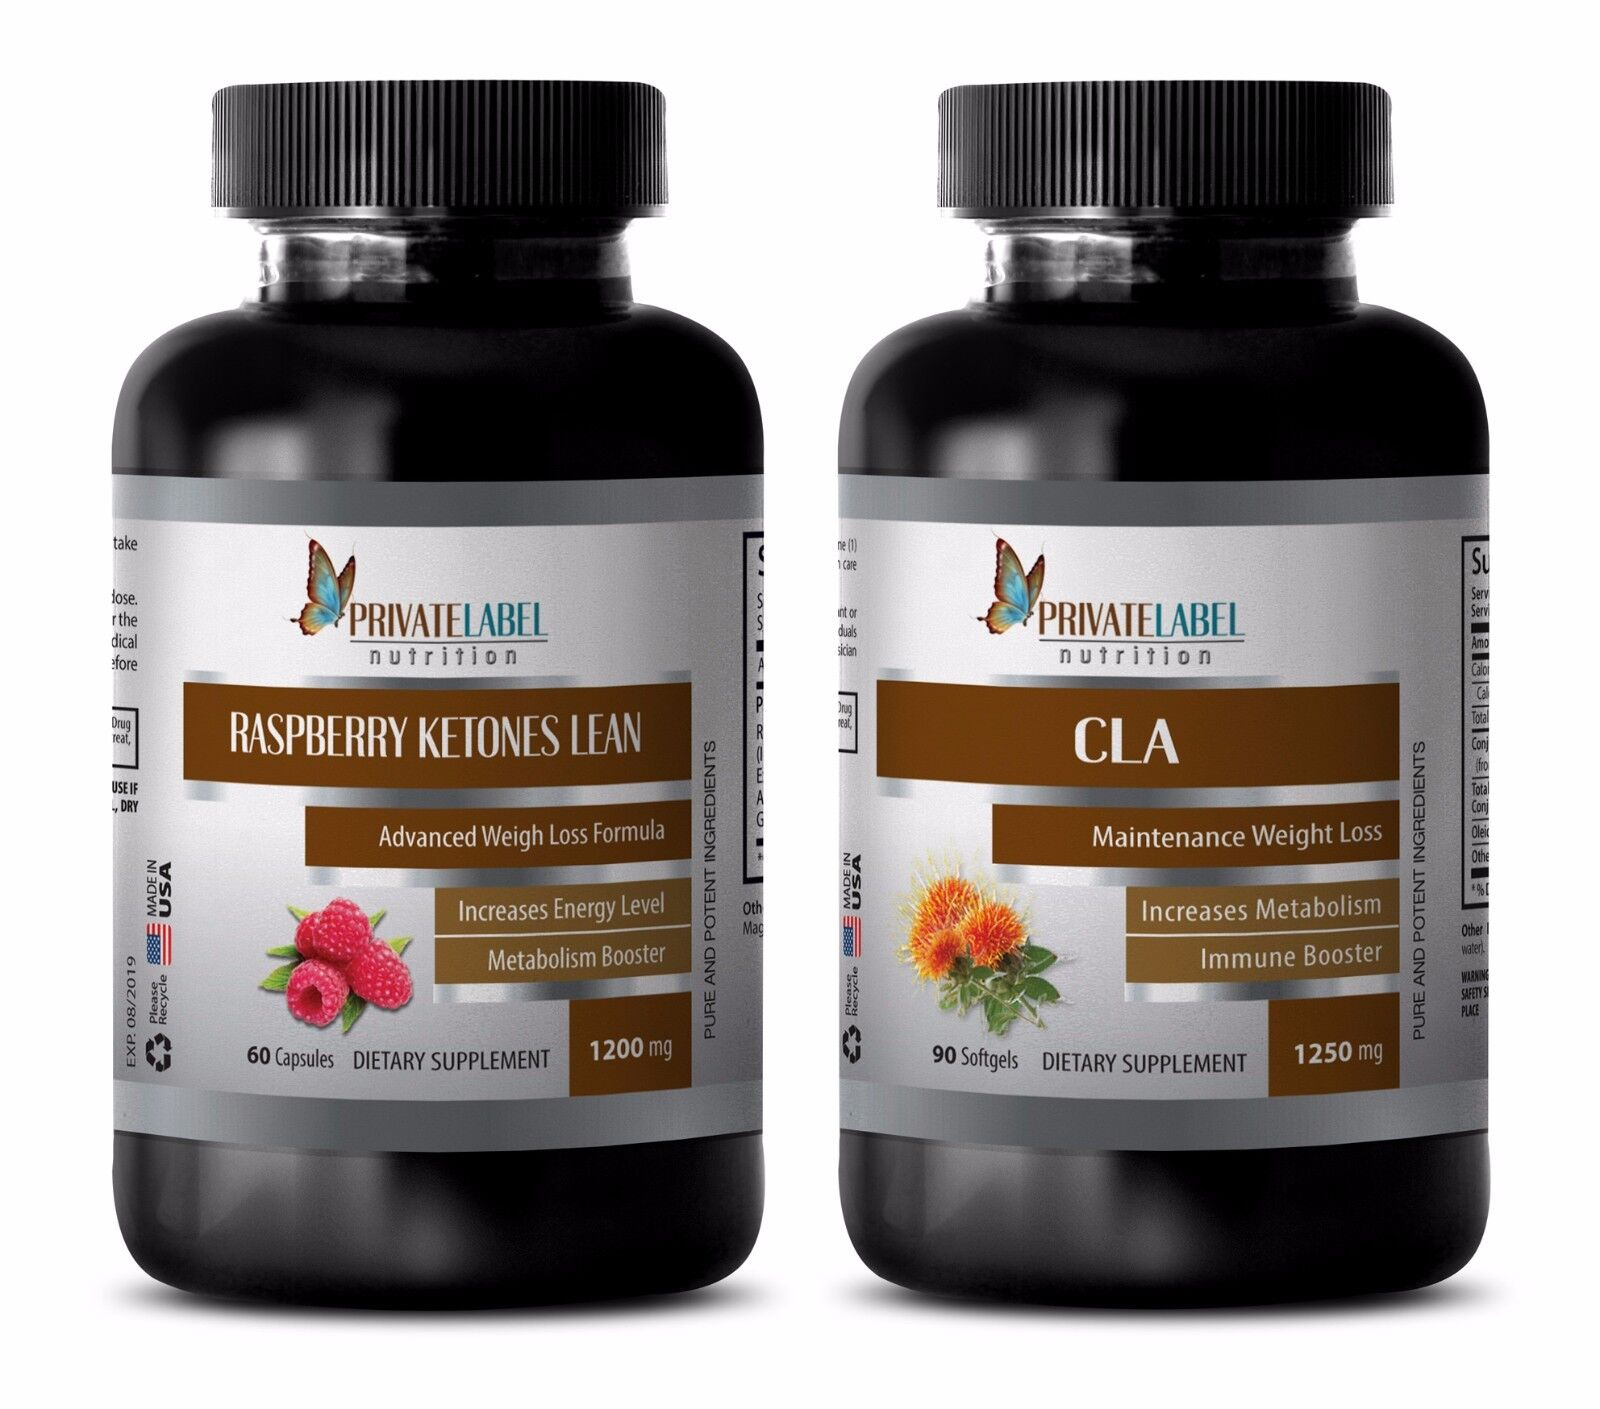 Weight loss products - RASPBERRY KETONES – CLA COMBO - cla